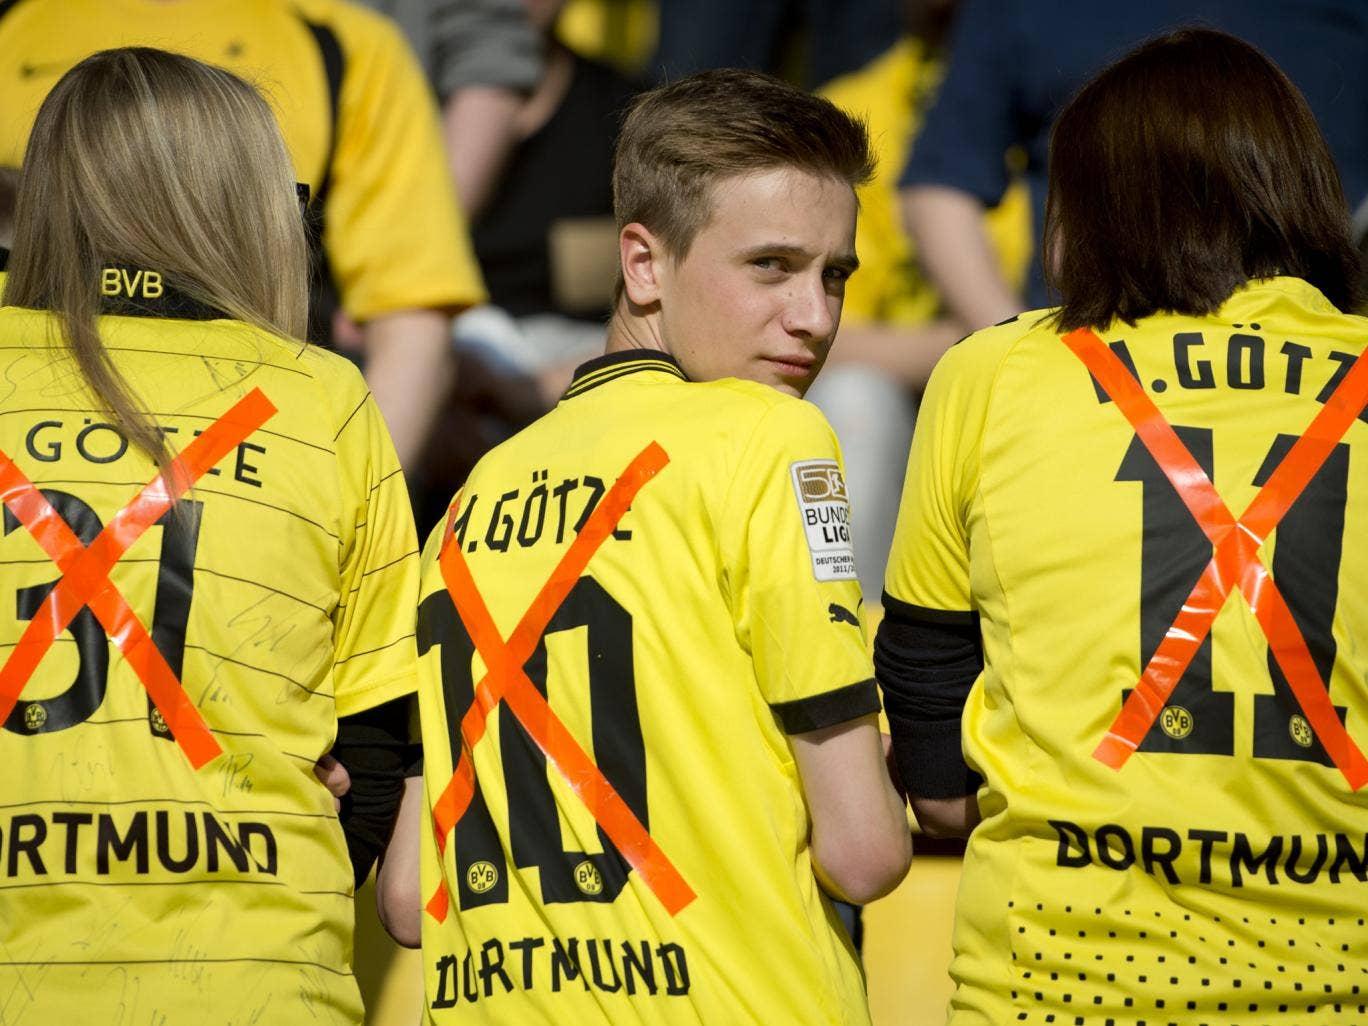 Dortmund fans have been upset by Mario Gotze's decision to join Bayern